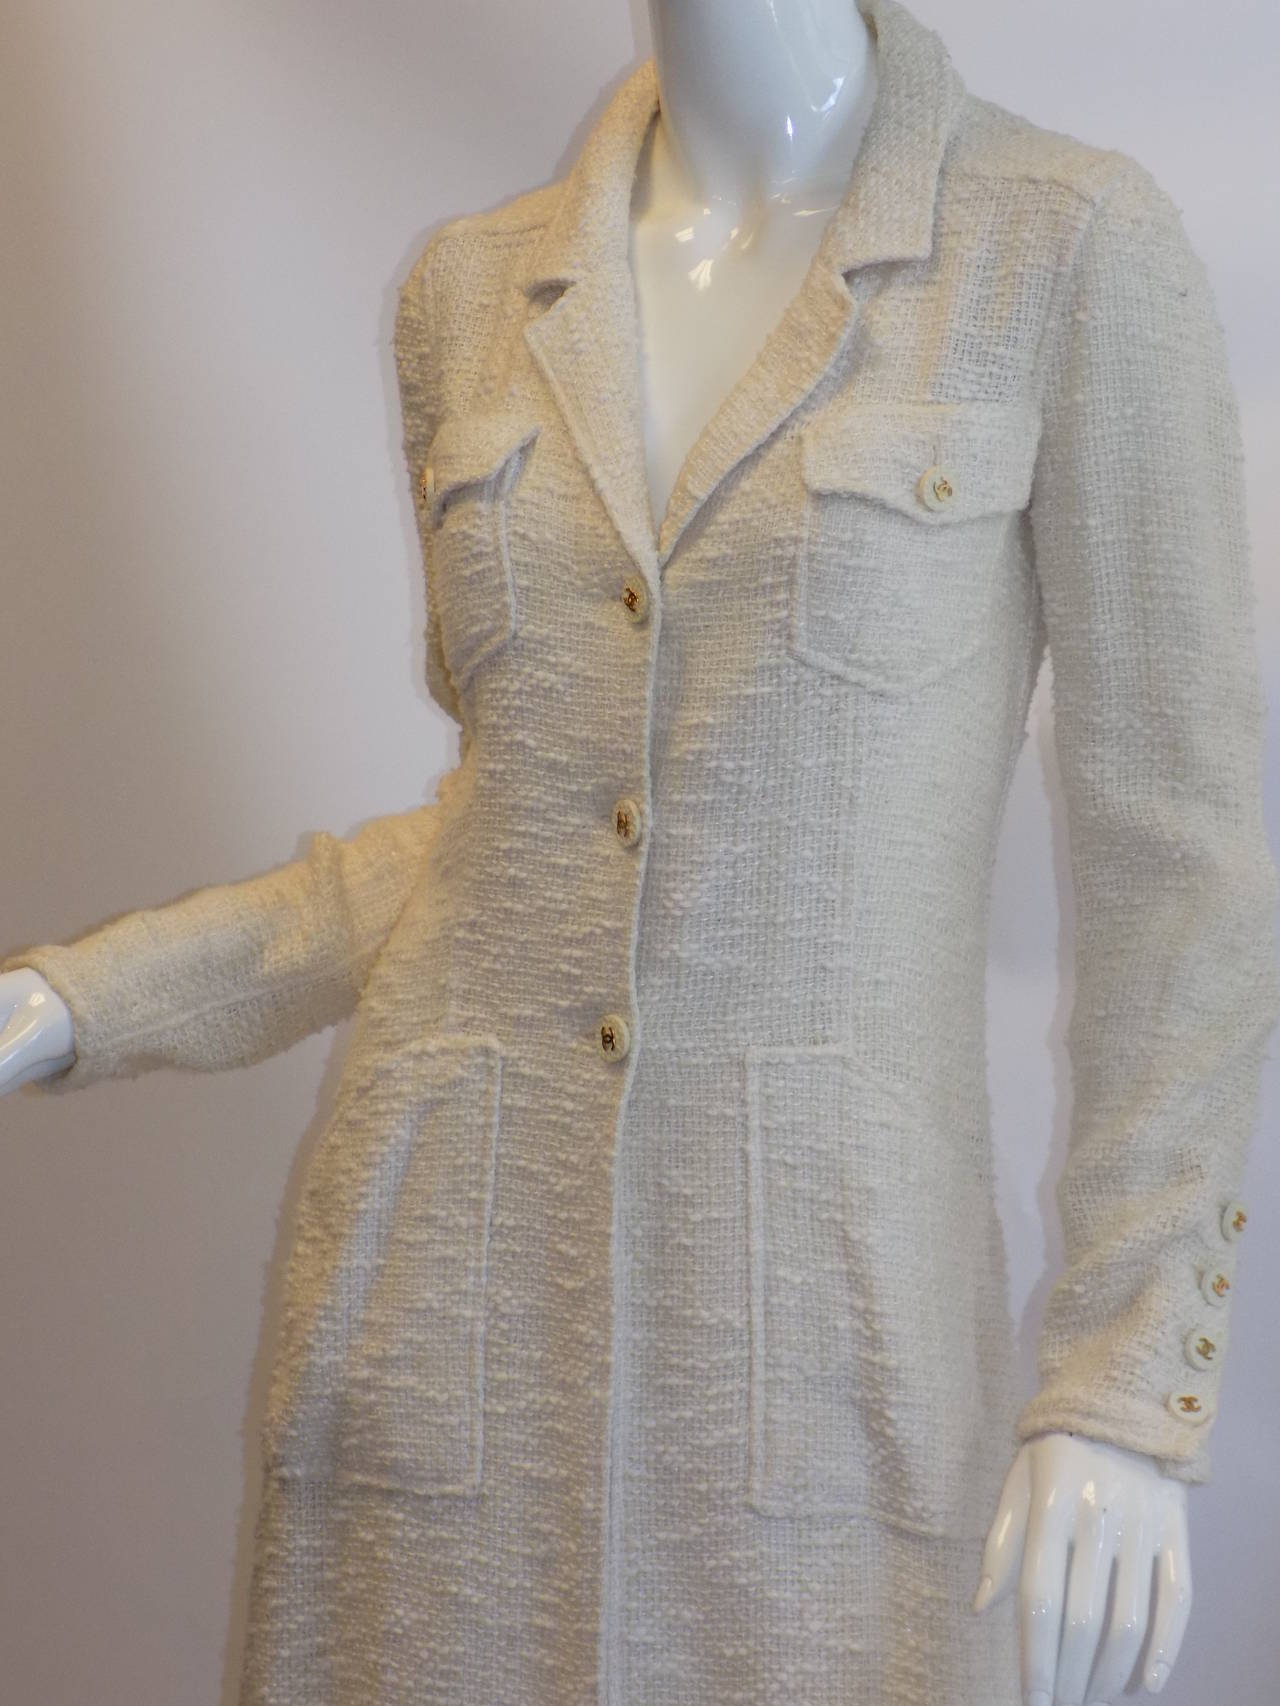 Chanel catwalk vintage winter white  coat dress duster 2